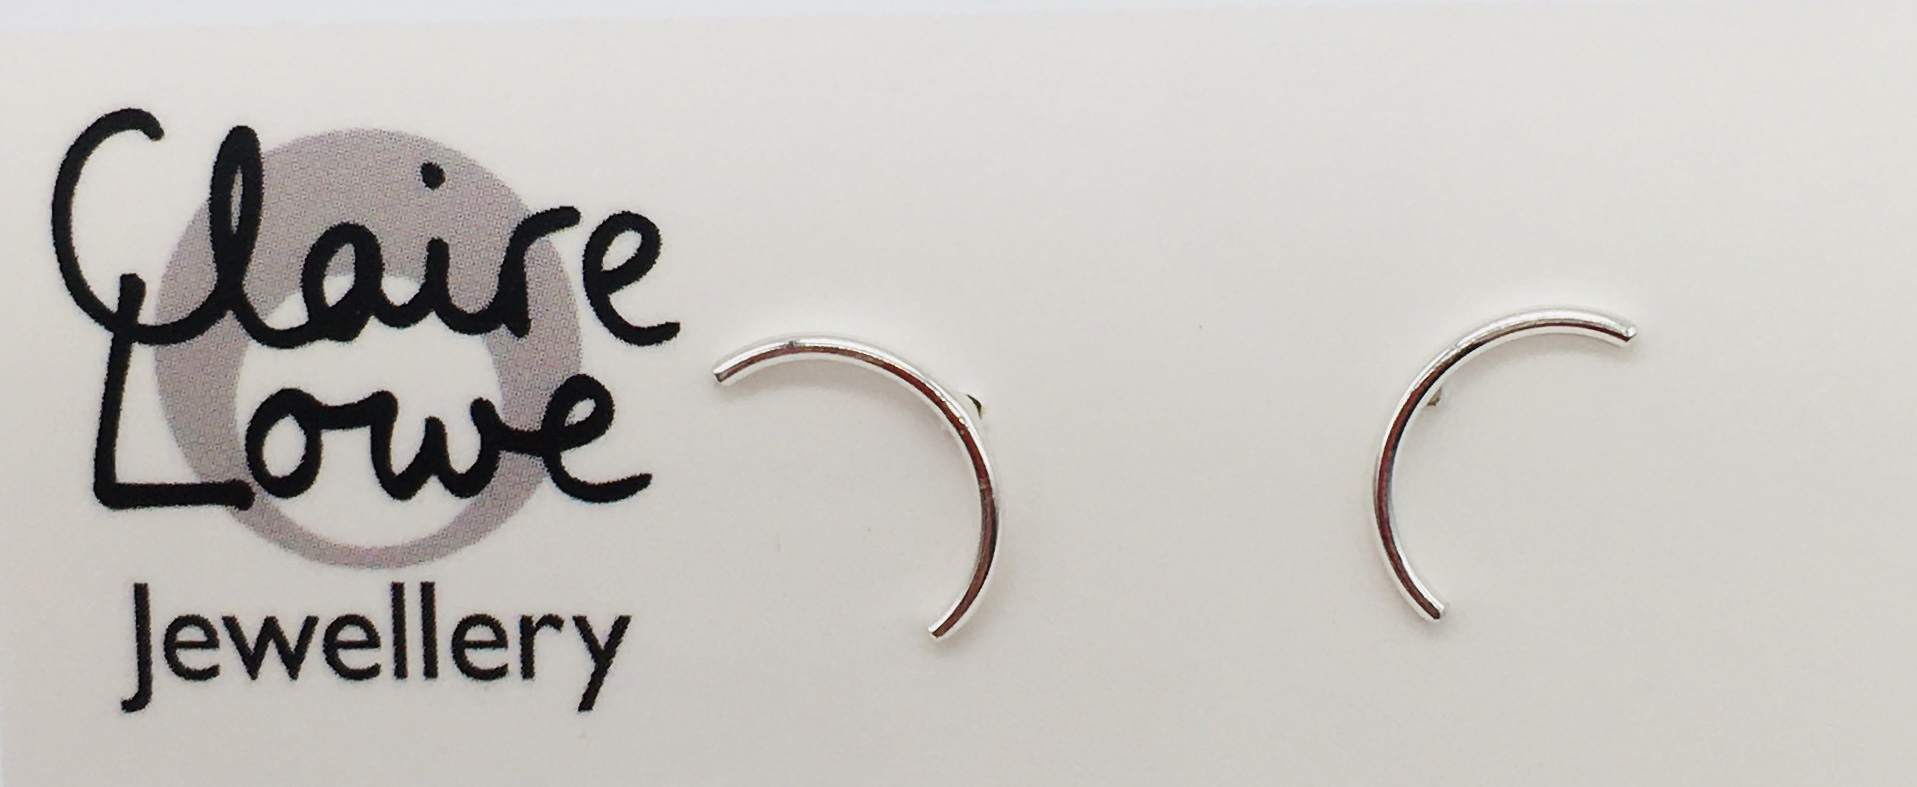 Silver arc studs for sale, handmade in Devon by silversmith Claire Lowe.